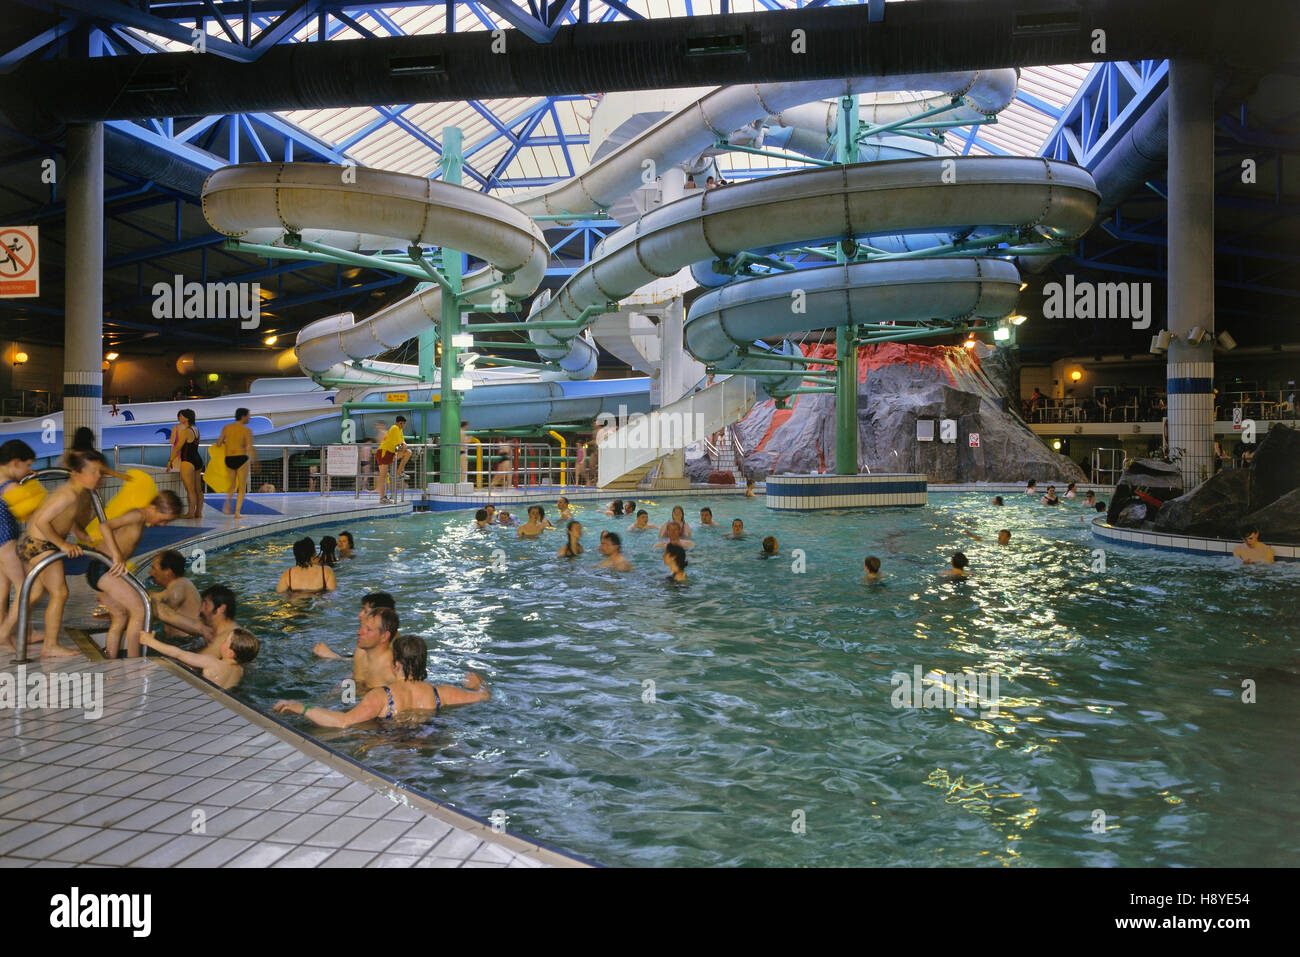 Indoor Fun Pool At Butlins Funcoast World Skegness Lincolnshire Stock Photo 125993648 Alamy